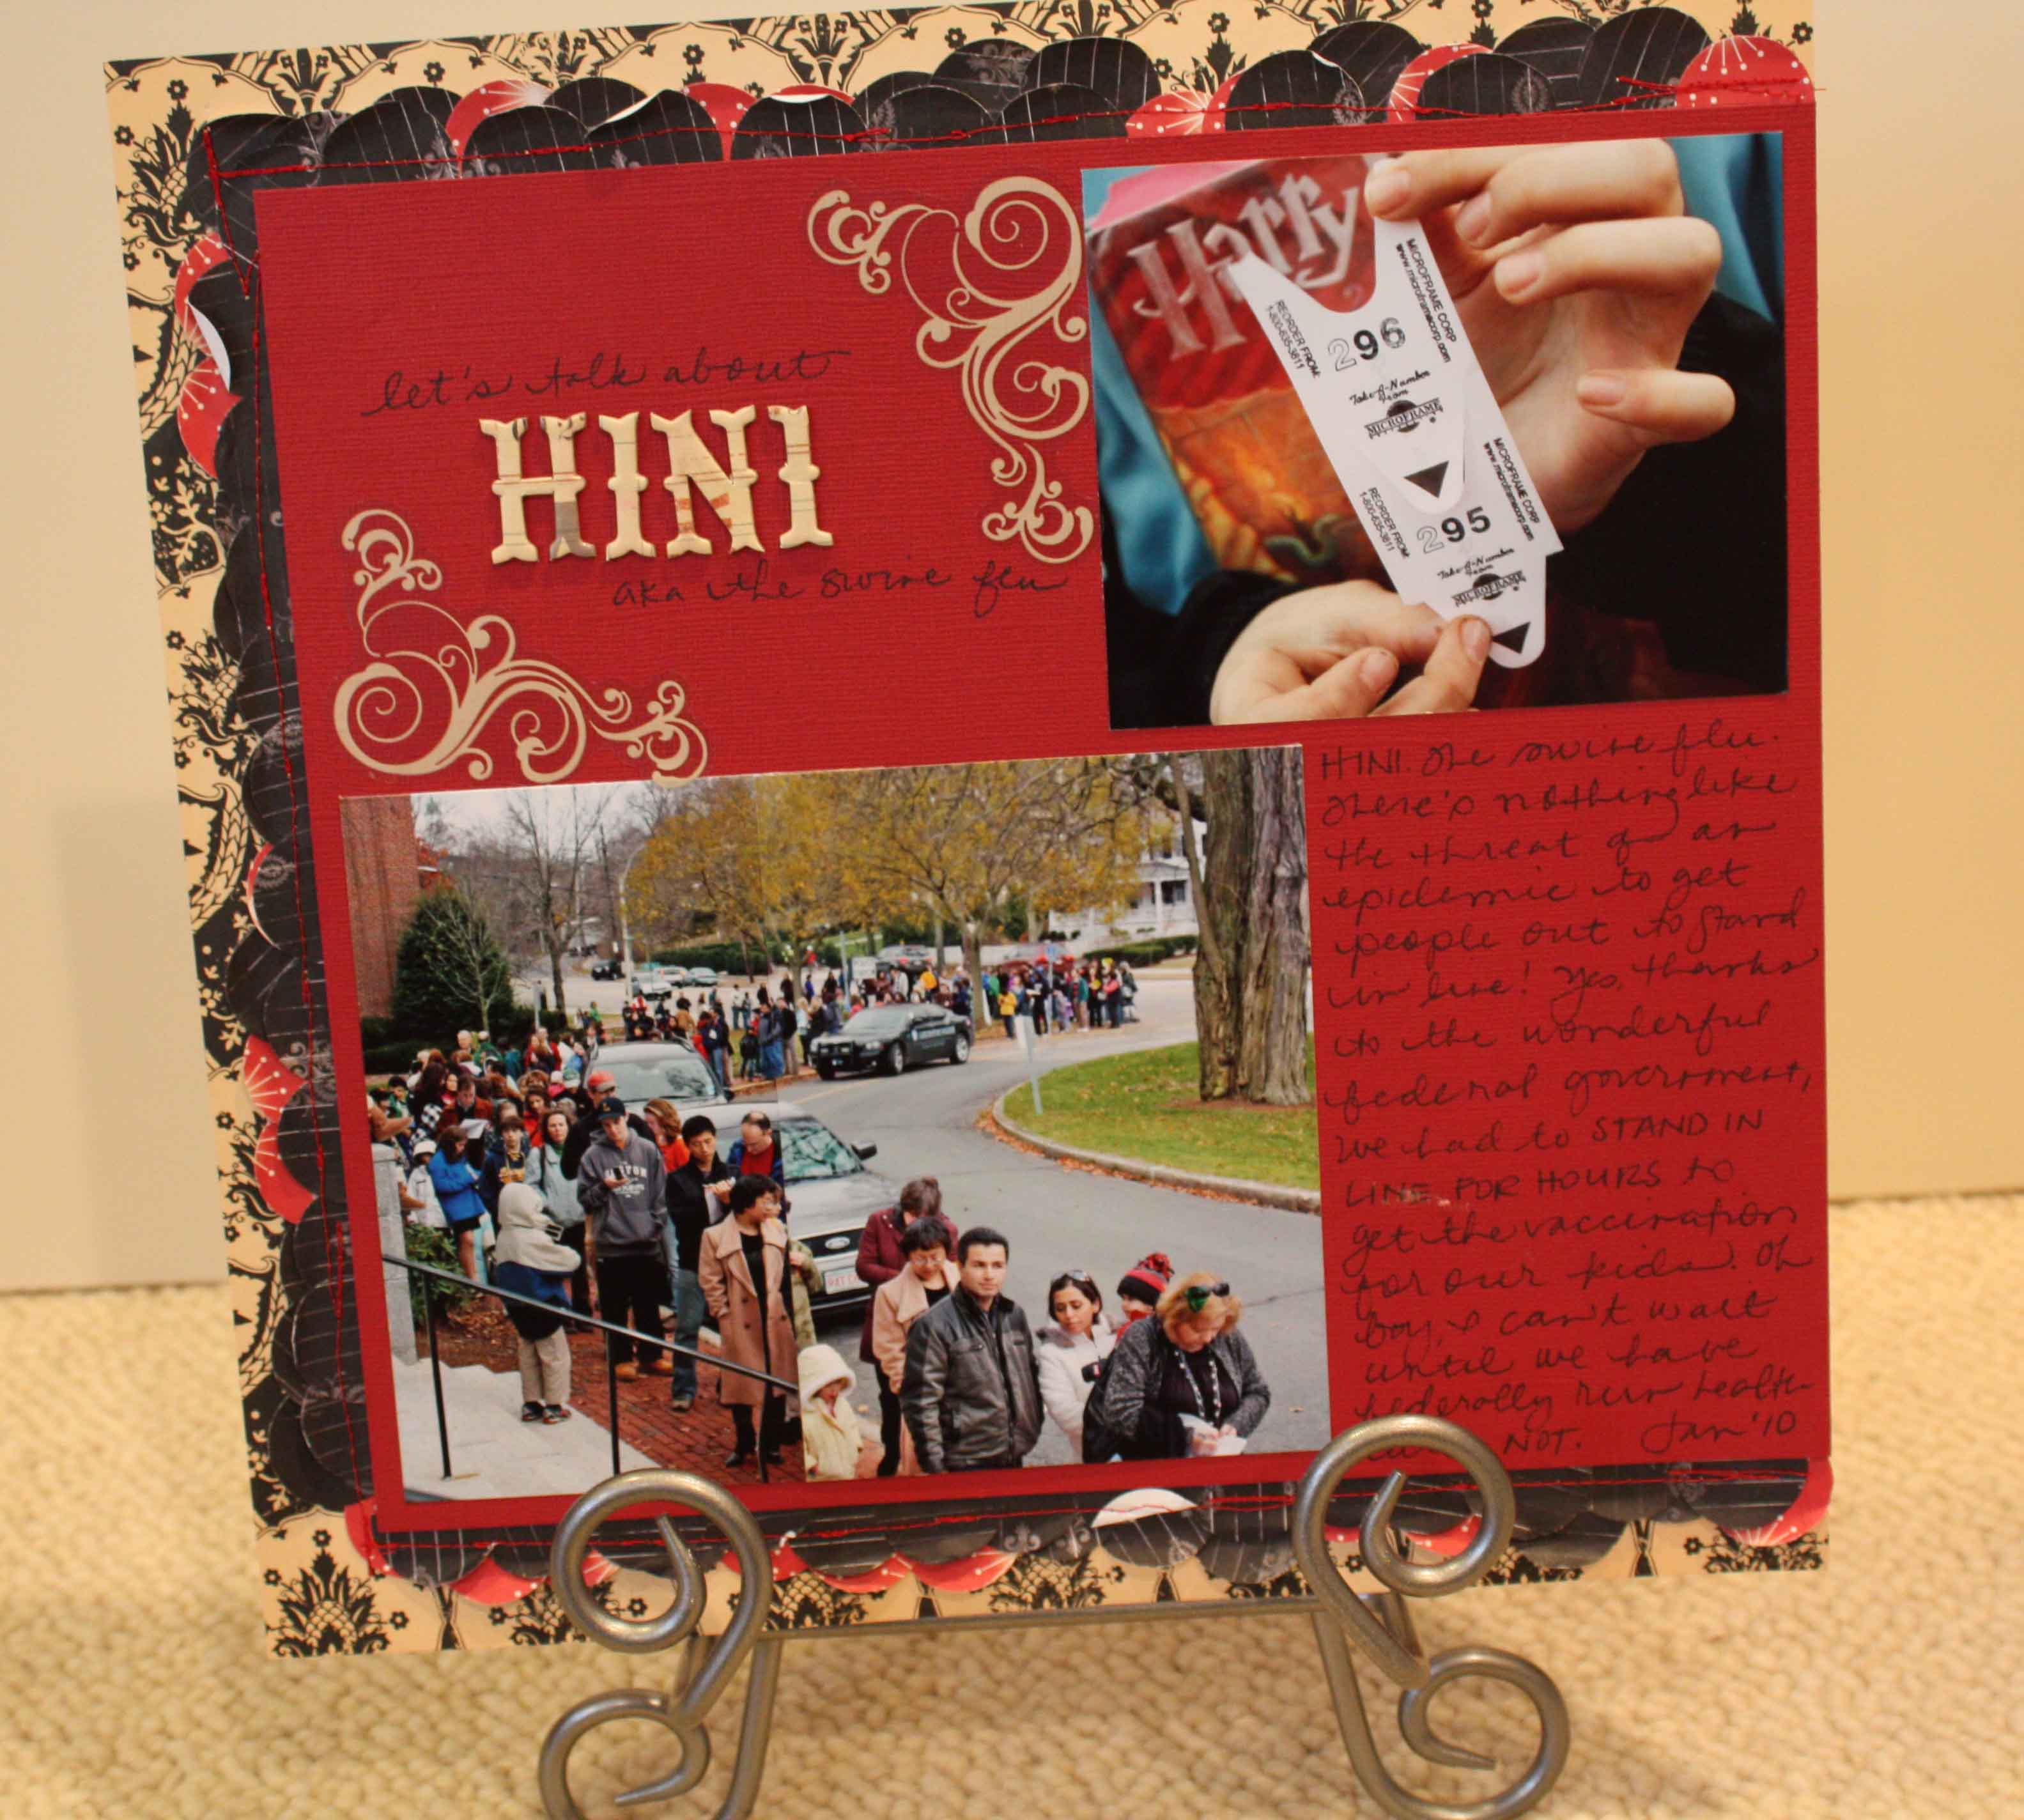 How to scrapbook good - Ummm Yes I Did Scrapbook The Whole H1n1 Vaccine Debacle How Could I Pass Up A Good Subject For My Scrapbook Someday We Ll Want To Remember Standing In